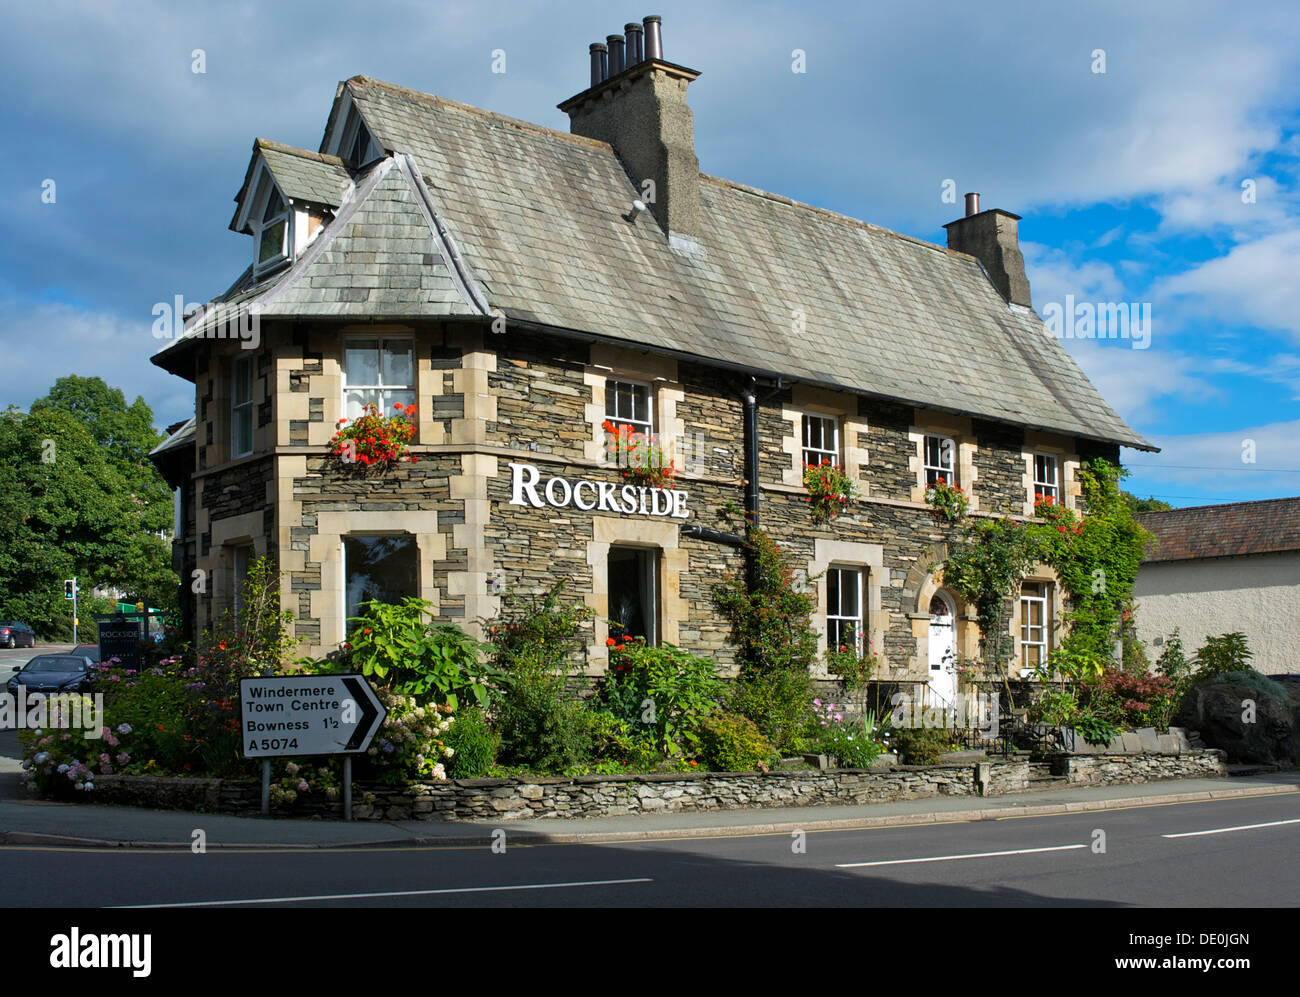 Rockside Guesthouse in der Stadt Windermere, Lake District National Park, Cumbria, England UK Stockbild